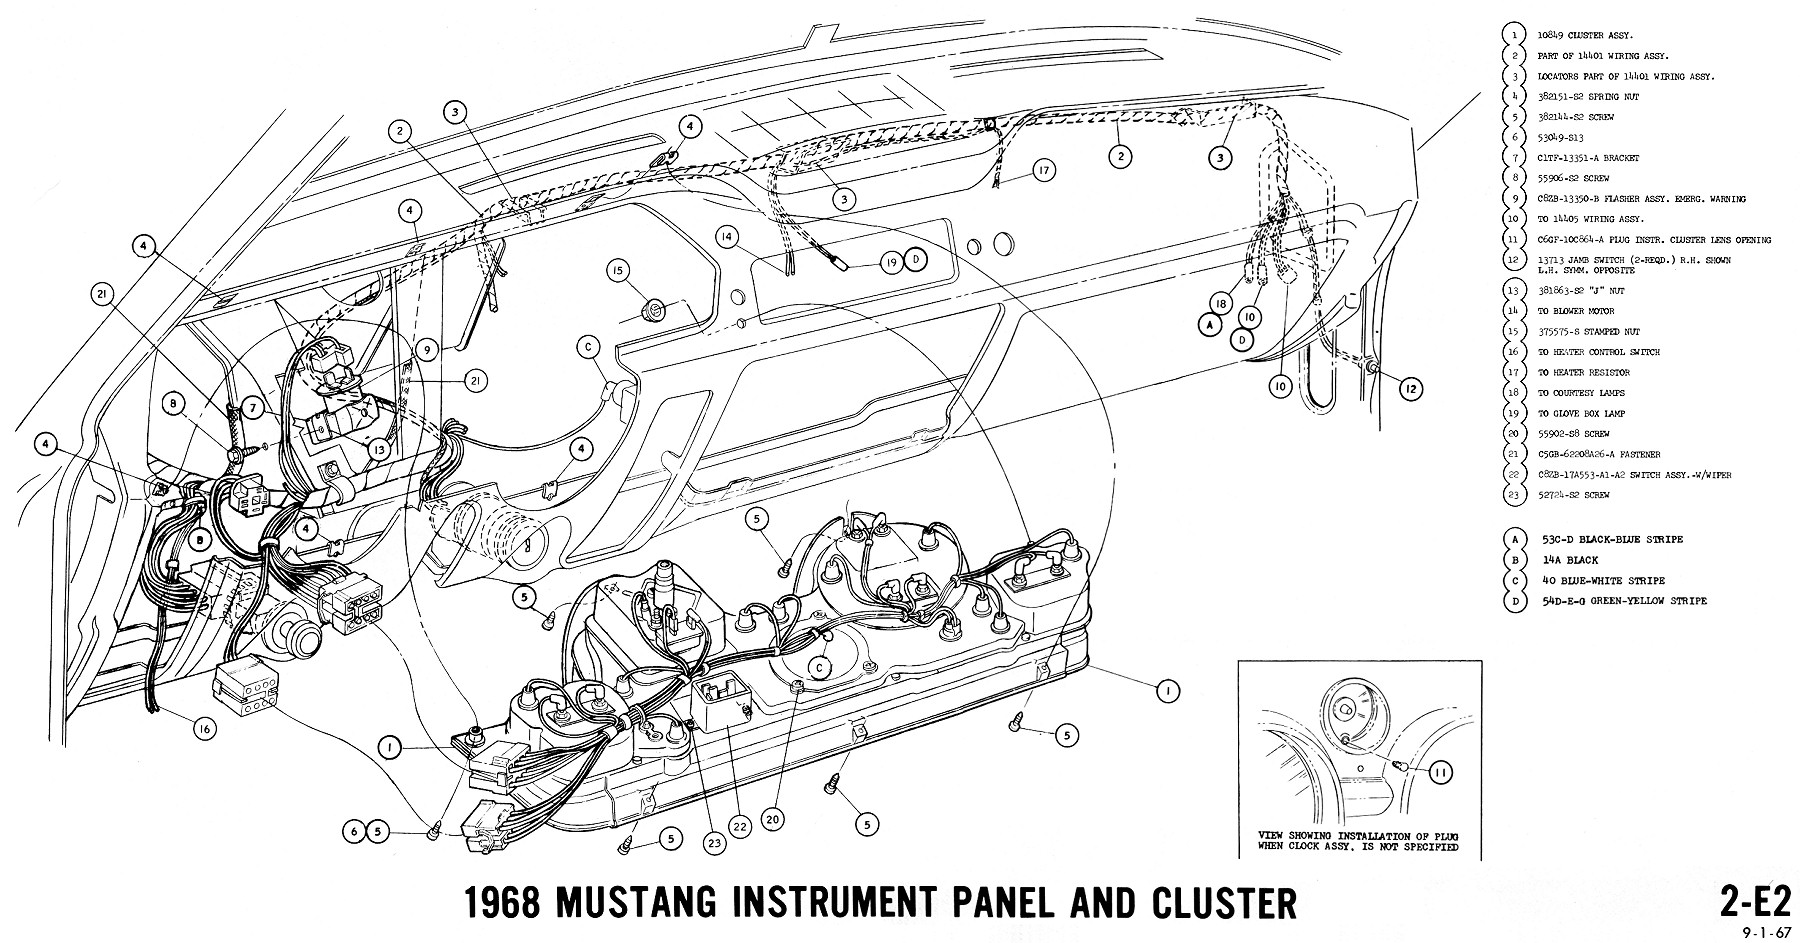 1964 Mustang Wiring Diagrams further Chevrolet P30 Motorhome also Ford Thunderbird 1958 Windows Wiring Diagram moreover 1965 Corvette Wiring Diagram as well WU1z 16831. on 1965 mustang heater wiring